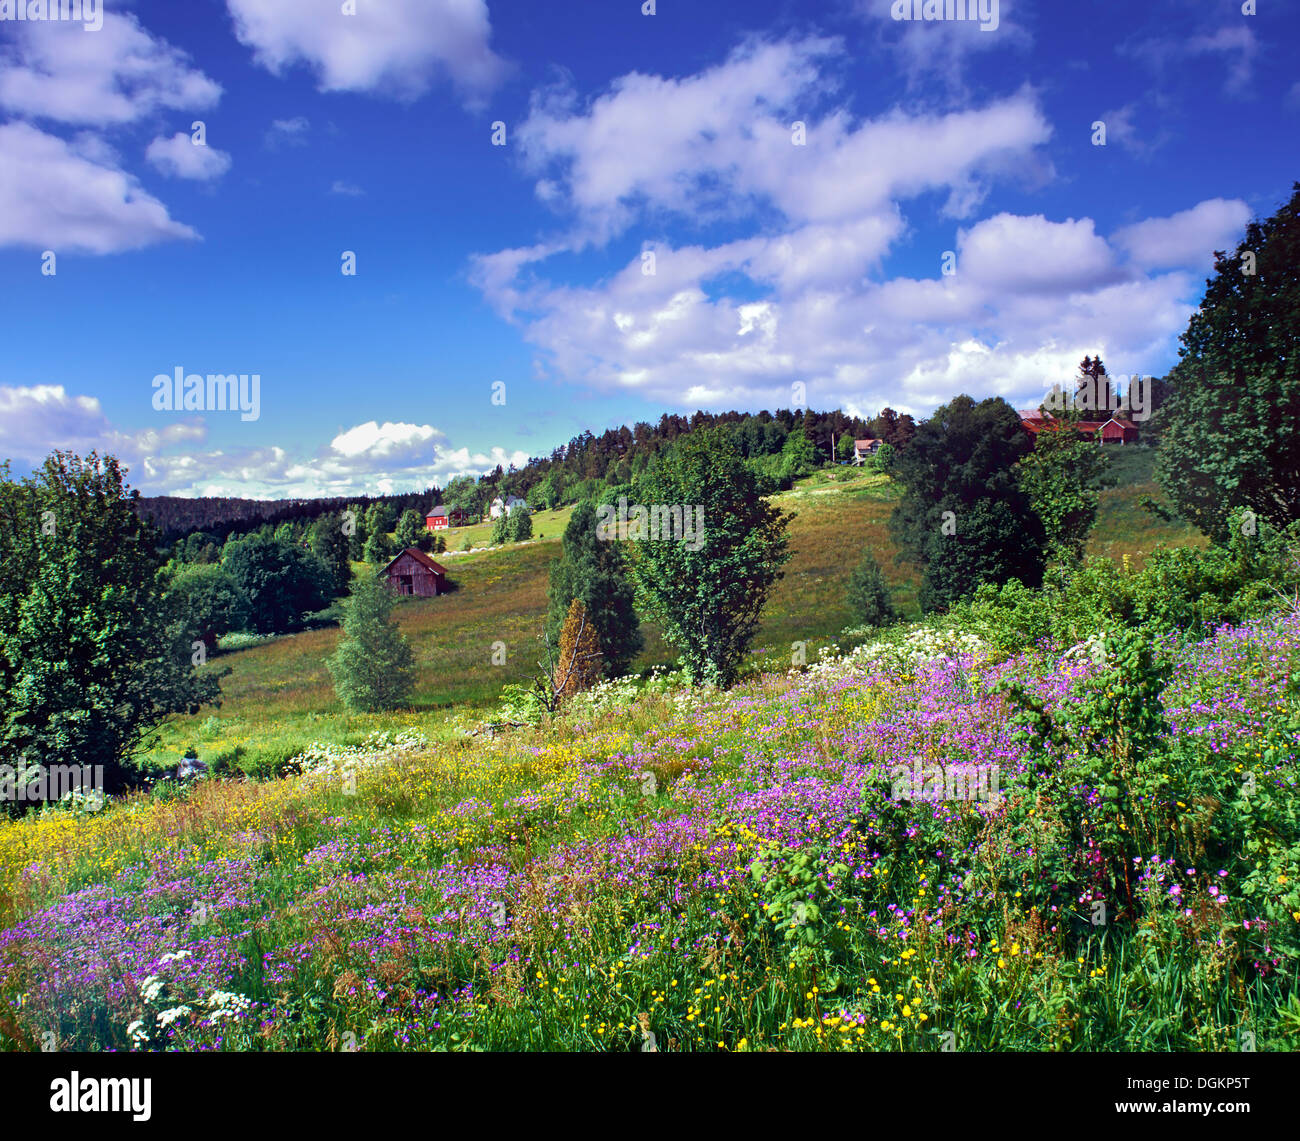 A view of flowering countryside in southern Norway. - Stock Image